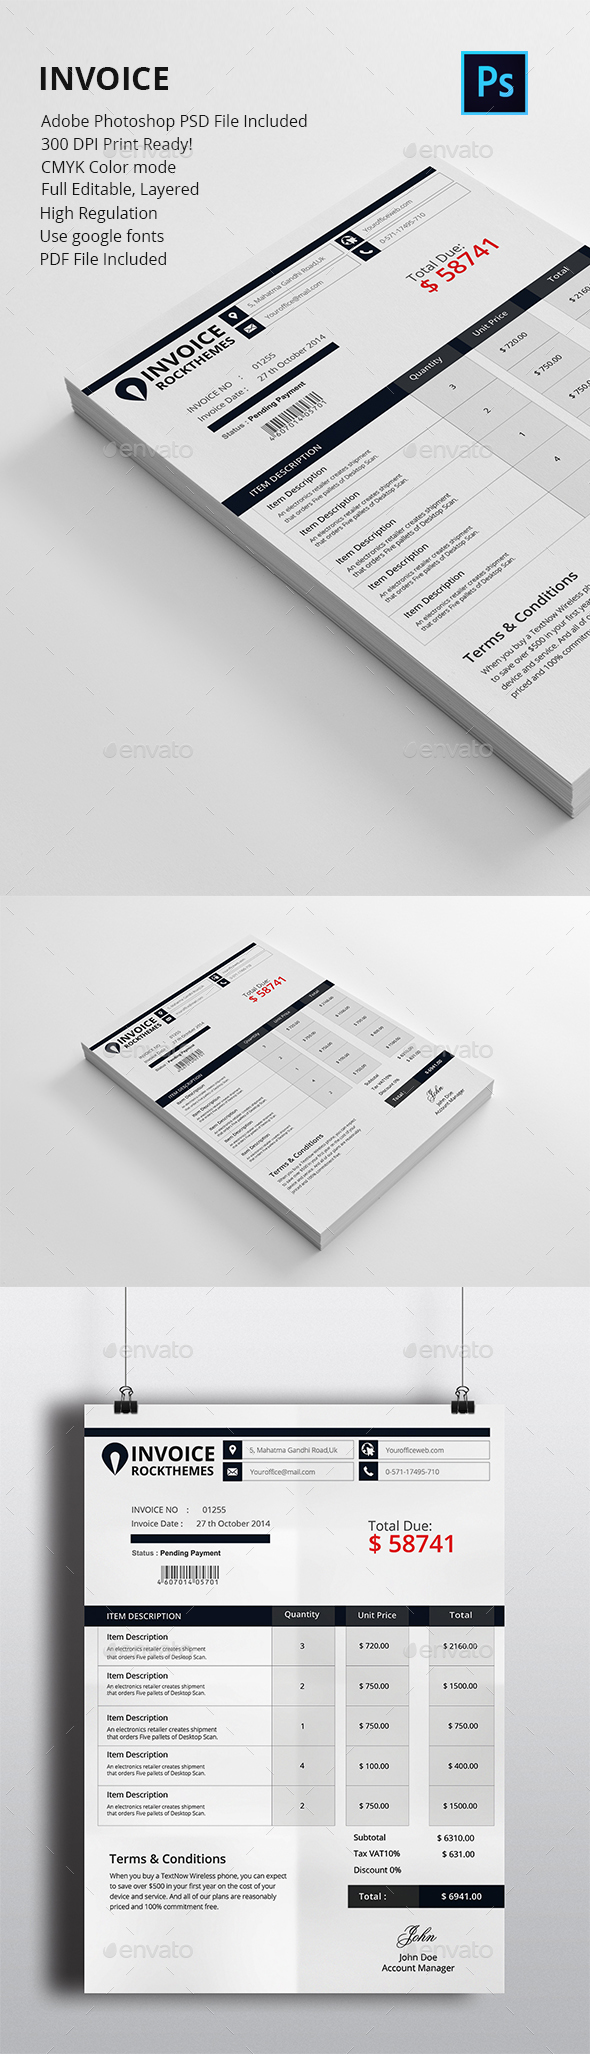 Invoice Stationery and Design Templates from GraphicRiver (Page 11)